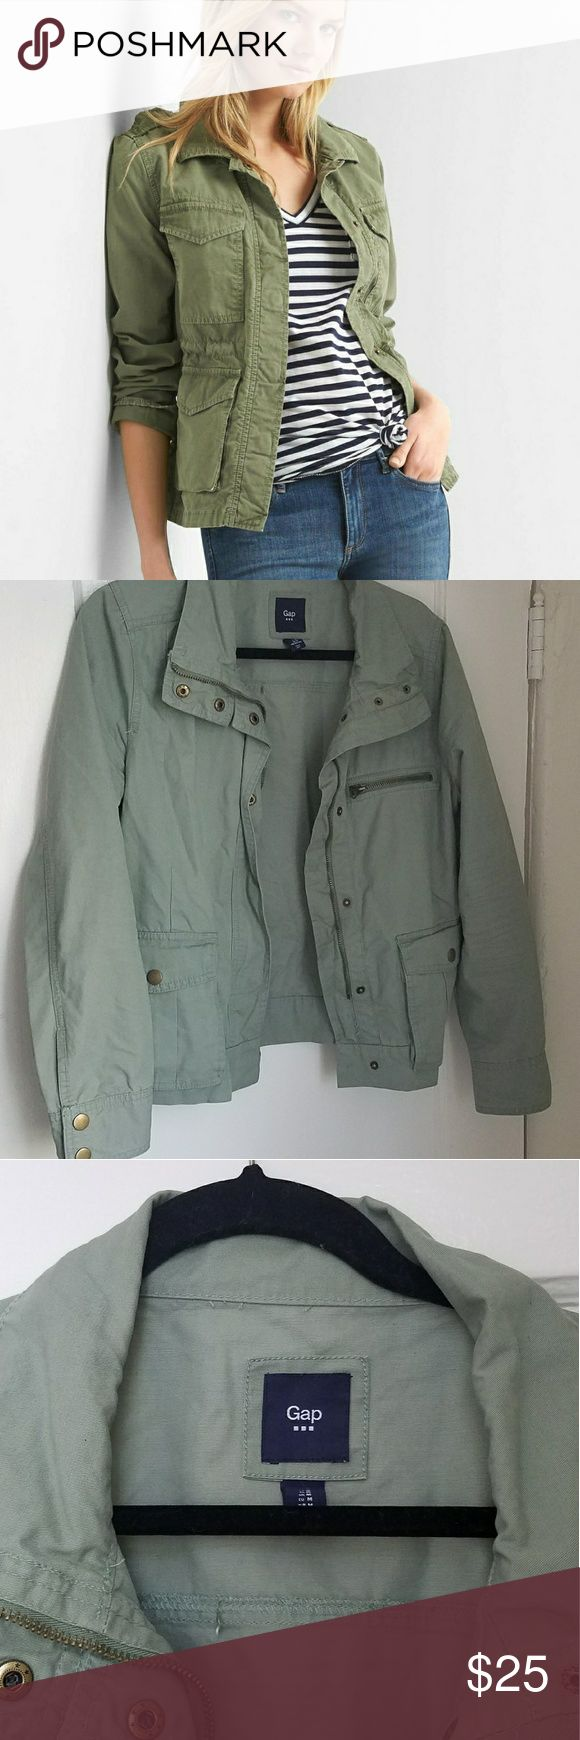 Gap Outlet Green Utility Jacket Gap Outlet green utility jacket. The color of this jacket is more washed out than army. It's a bit cropped - hits at top of hip. Great to throw over almost anything. 100% cotton. Great condition. Only worn a few times. gap GAP Jackets & Coats Utility Jackets